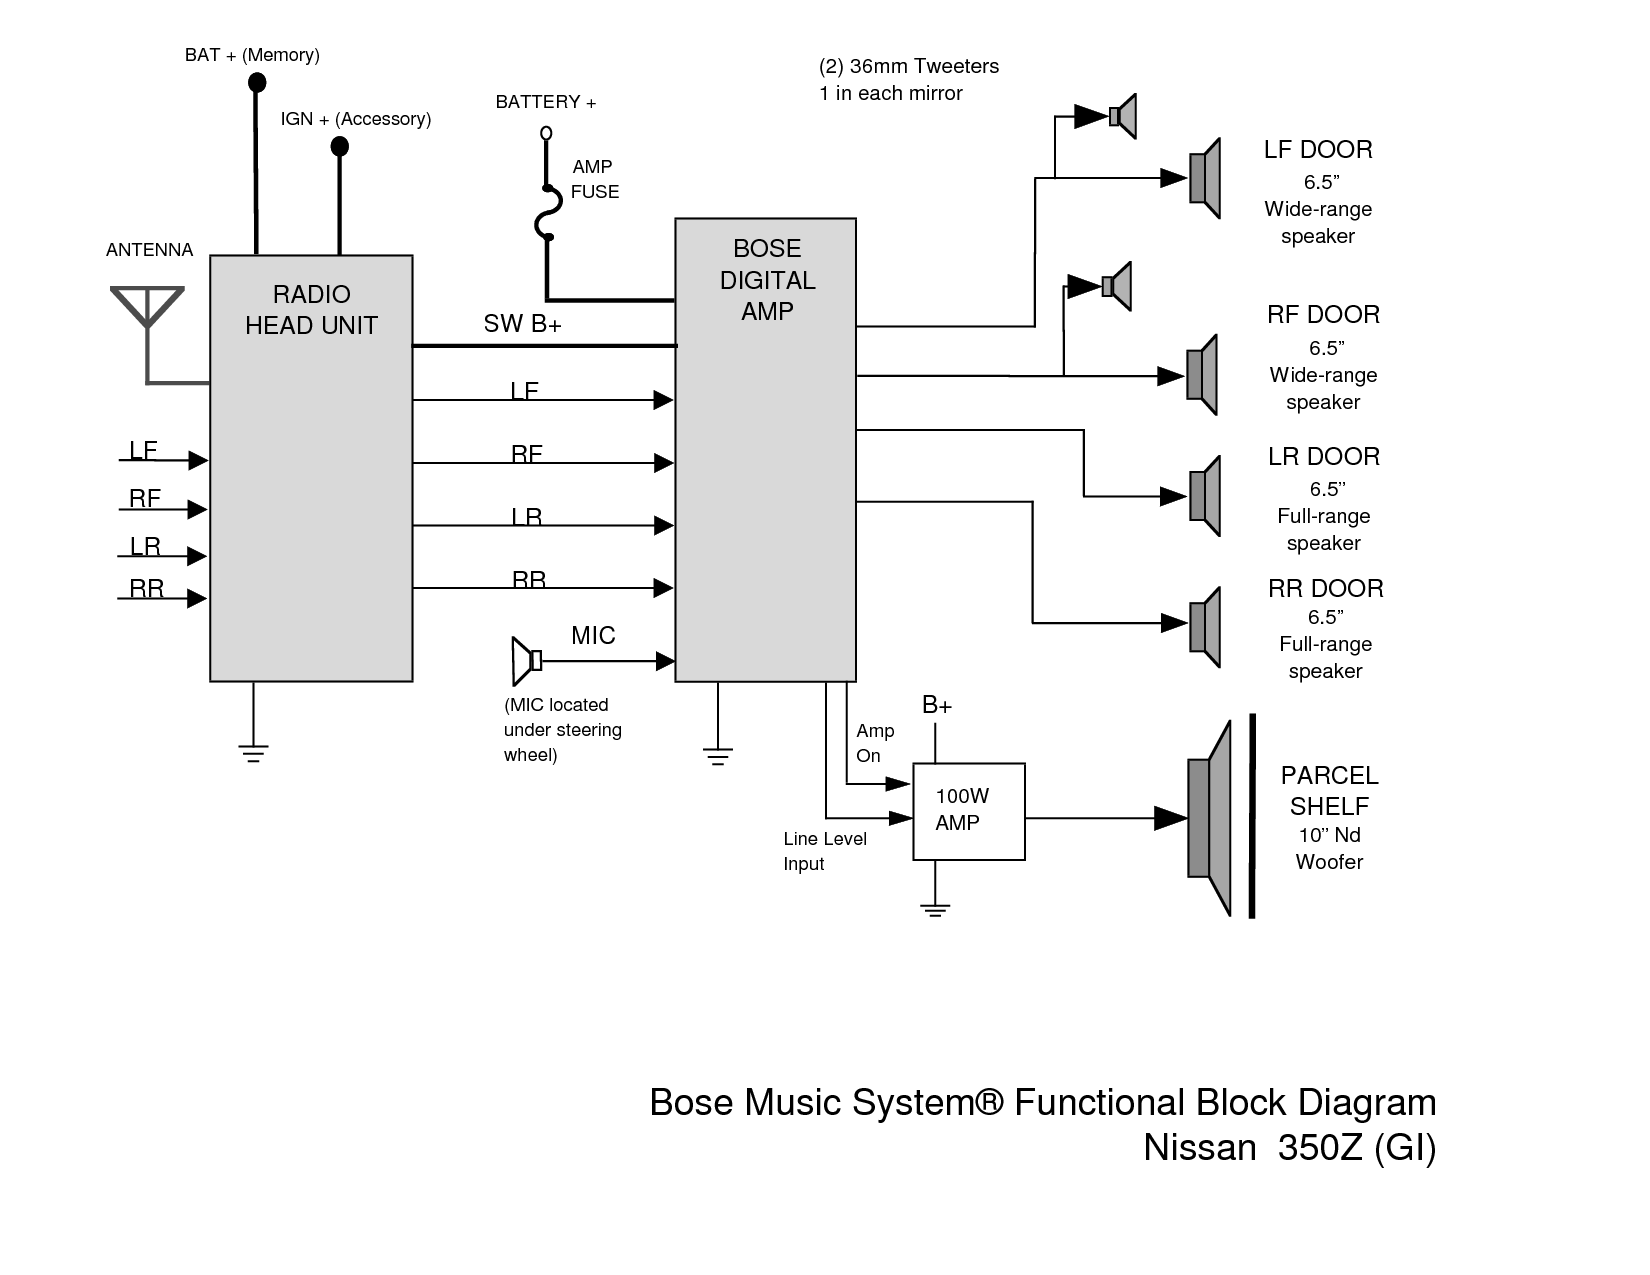 Bose Stereo Wiring Diagram 93 Cadillac Just Another Car Systems Diagrams Scematic Rh 89 Jessicadonath De Speaker